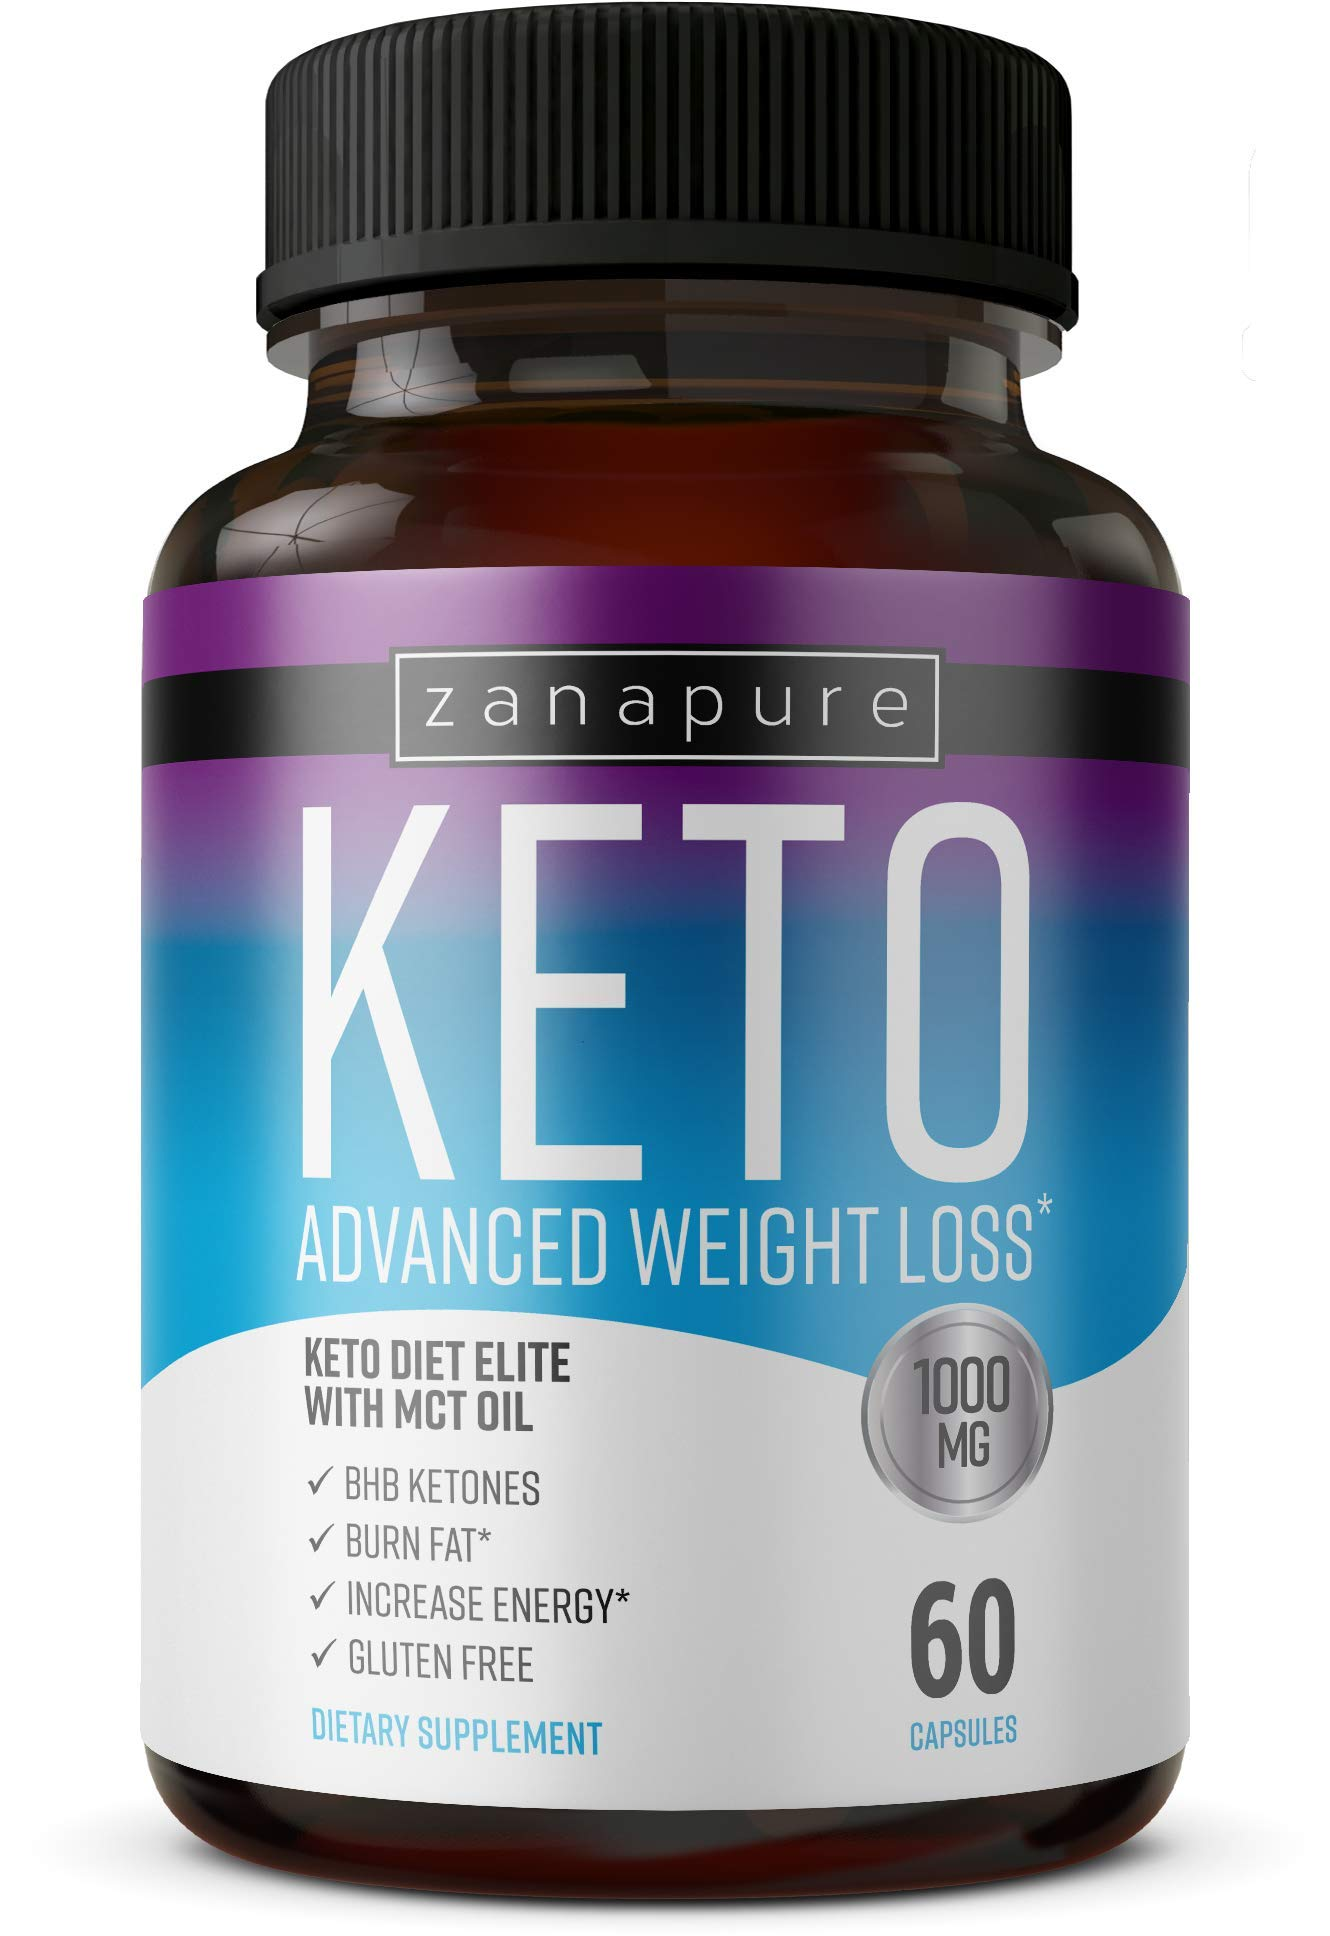 Keto Diet Elite - 1000mg Keto Advanced Weight Loss- Ketogenic Fat Burner- Burn Fat Instead of Carbs - Ketosis Supplement - Potassium and BHB Salts - 30 Day Supply by Zanapure